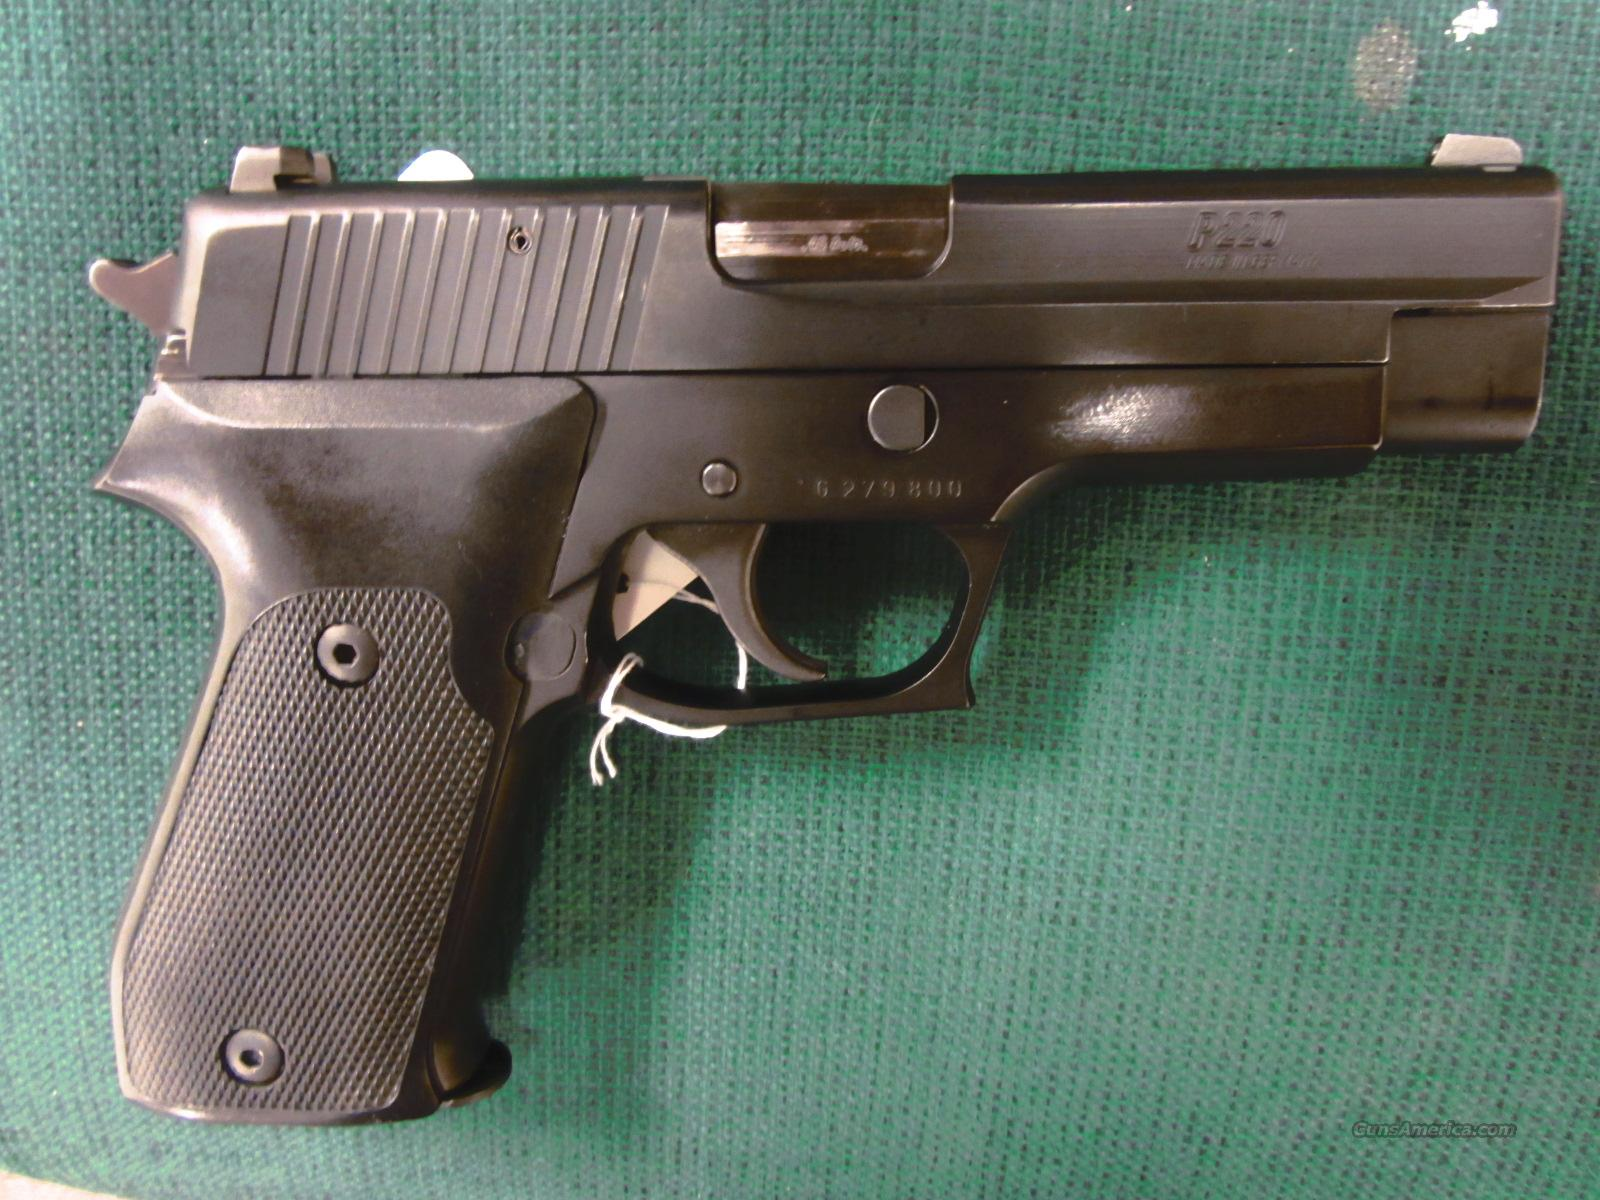 SIG P220 with night sights  Guns > Pistols > Sig - Sauer/Sigarms Pistols > P220